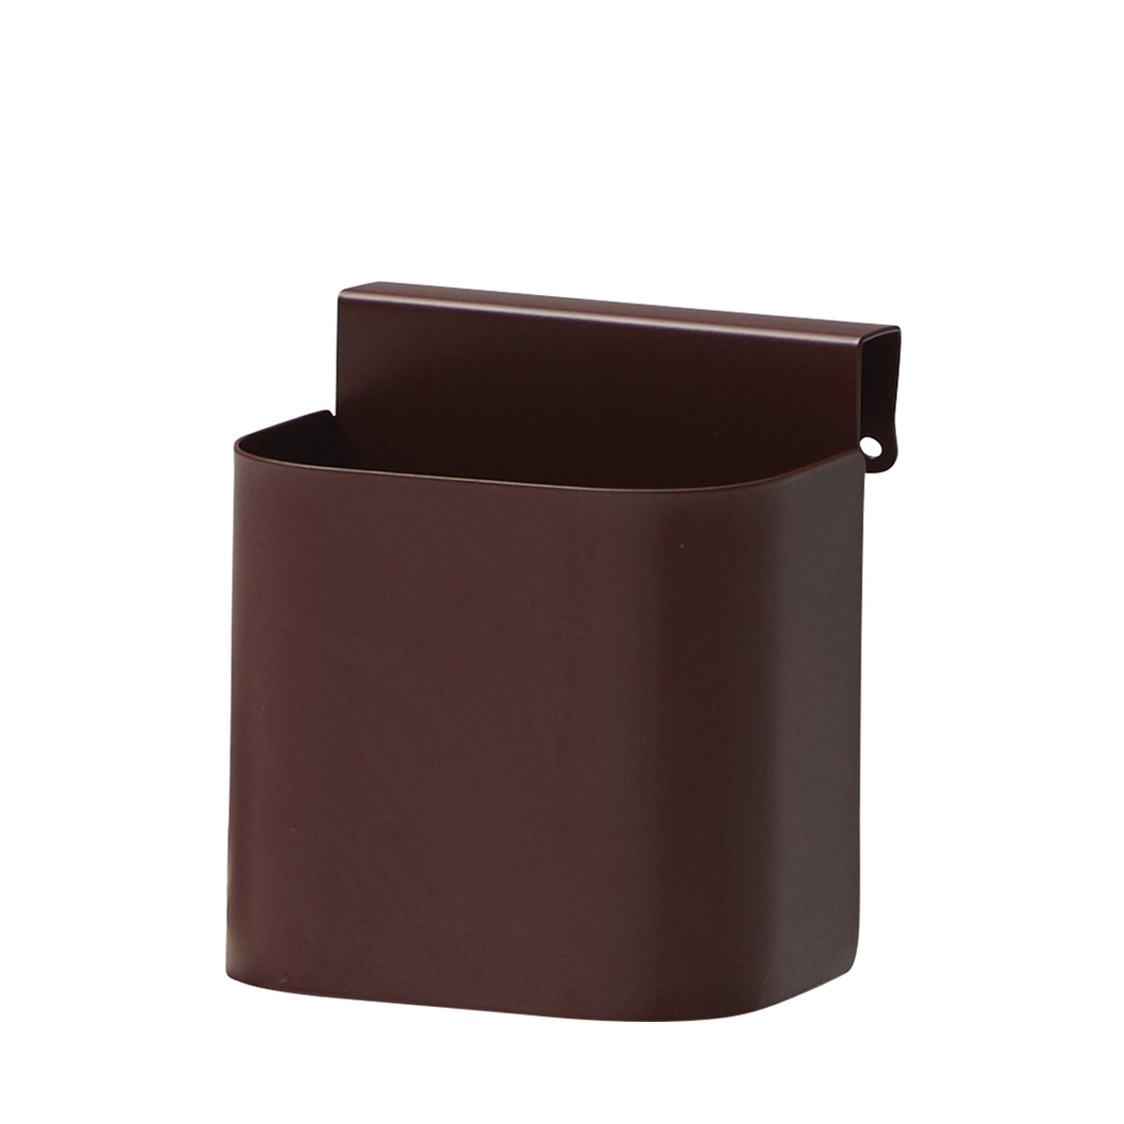 GLEN STUDIO Multi-use Holder  HSPA0102-BUR